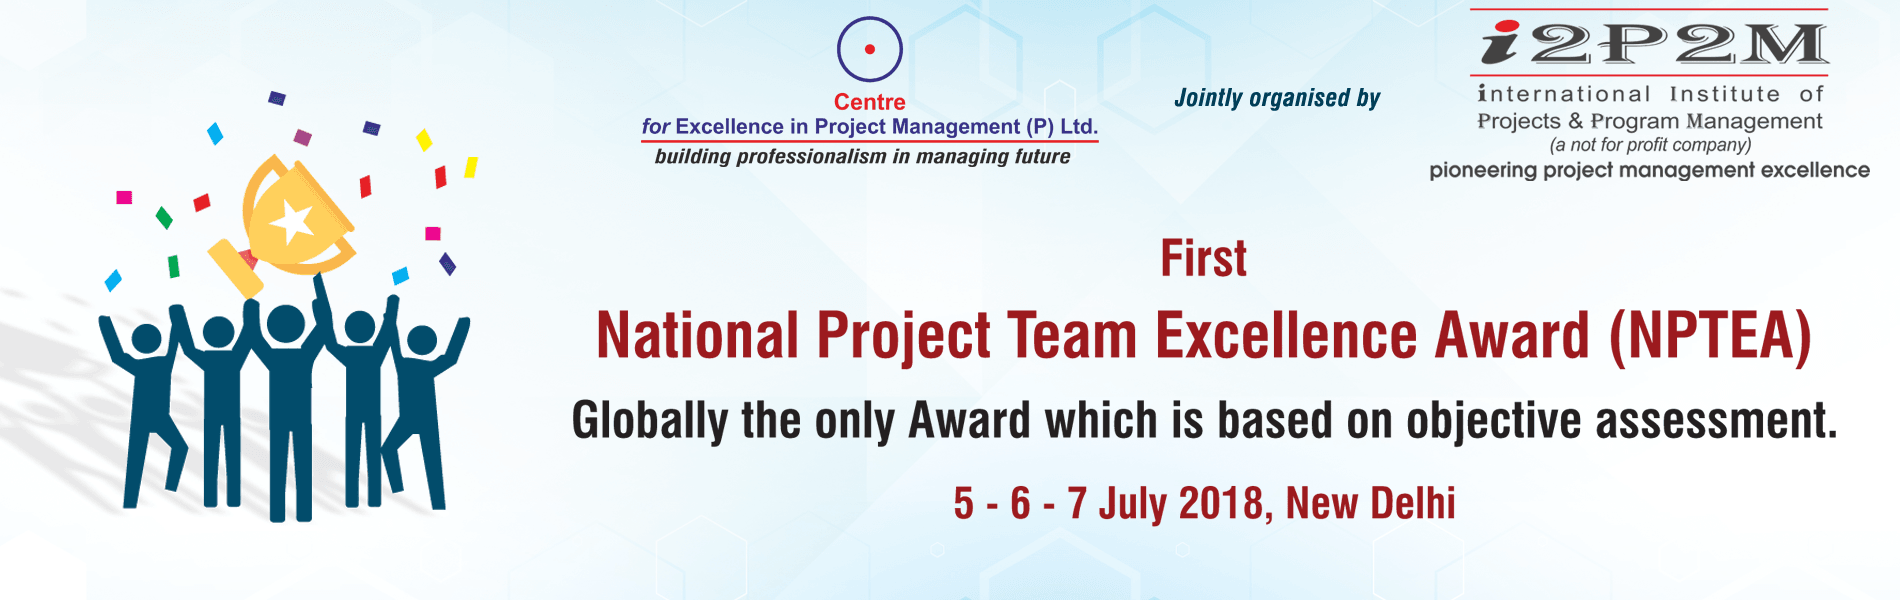 First National Project Team Excellence Award (NPTEA)